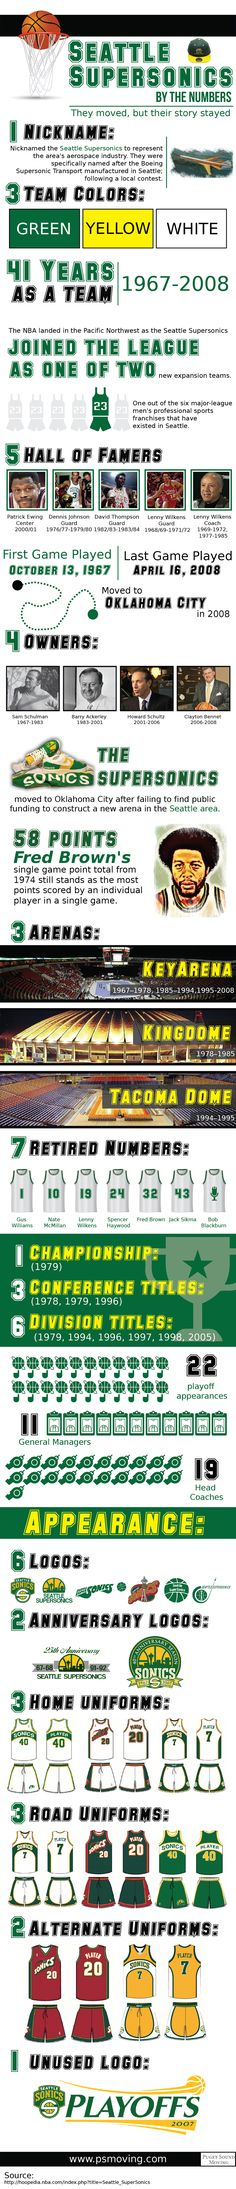 Seattle Supersonics by the Numbers highlights the history of the Sonics including accomplishments, owners, and hall of famers.